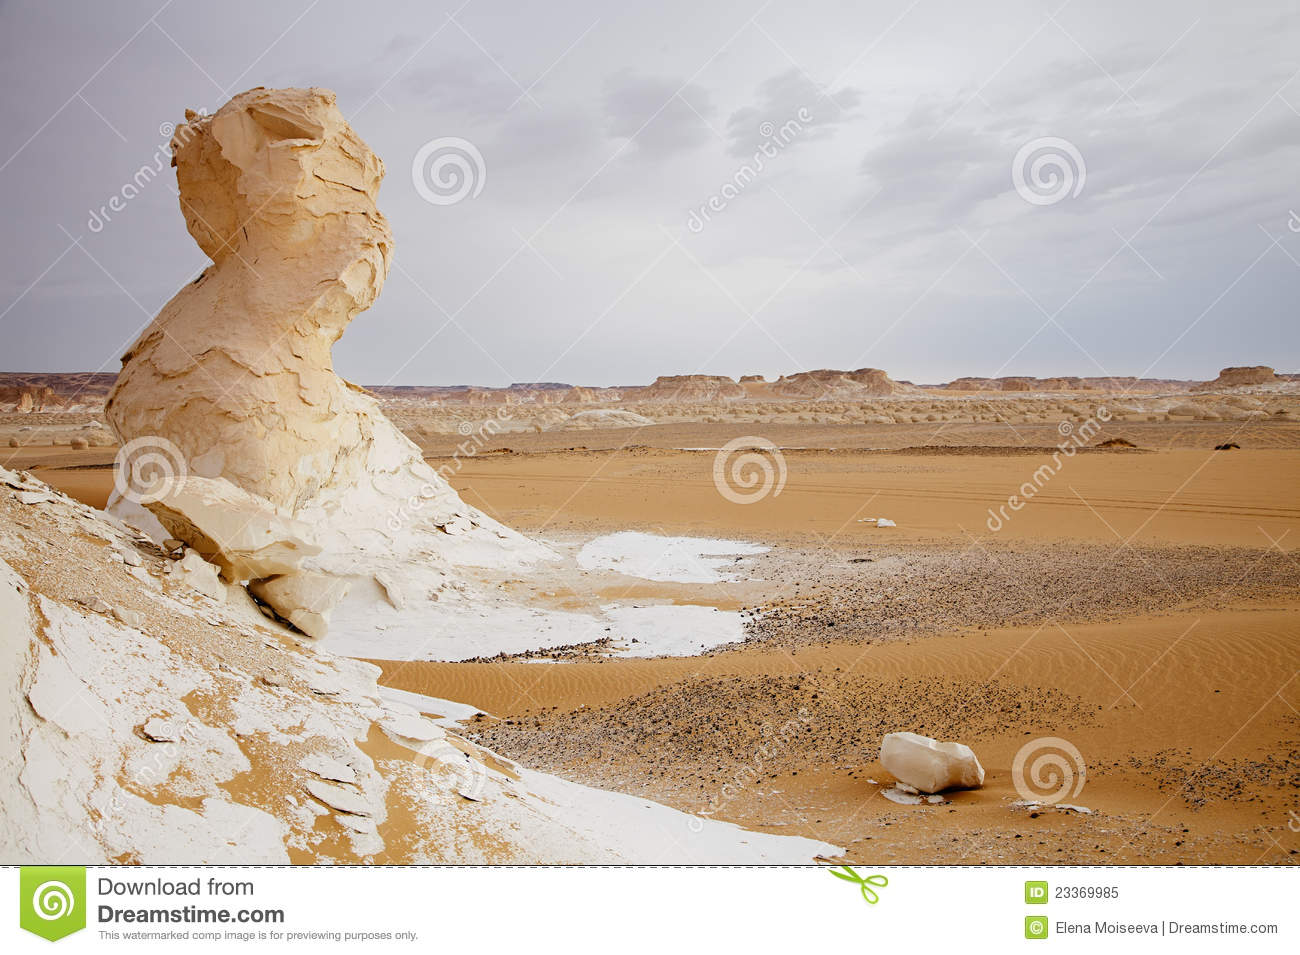 The Limestone Formation Rocks In The Sahara, Egypt Royalty ...